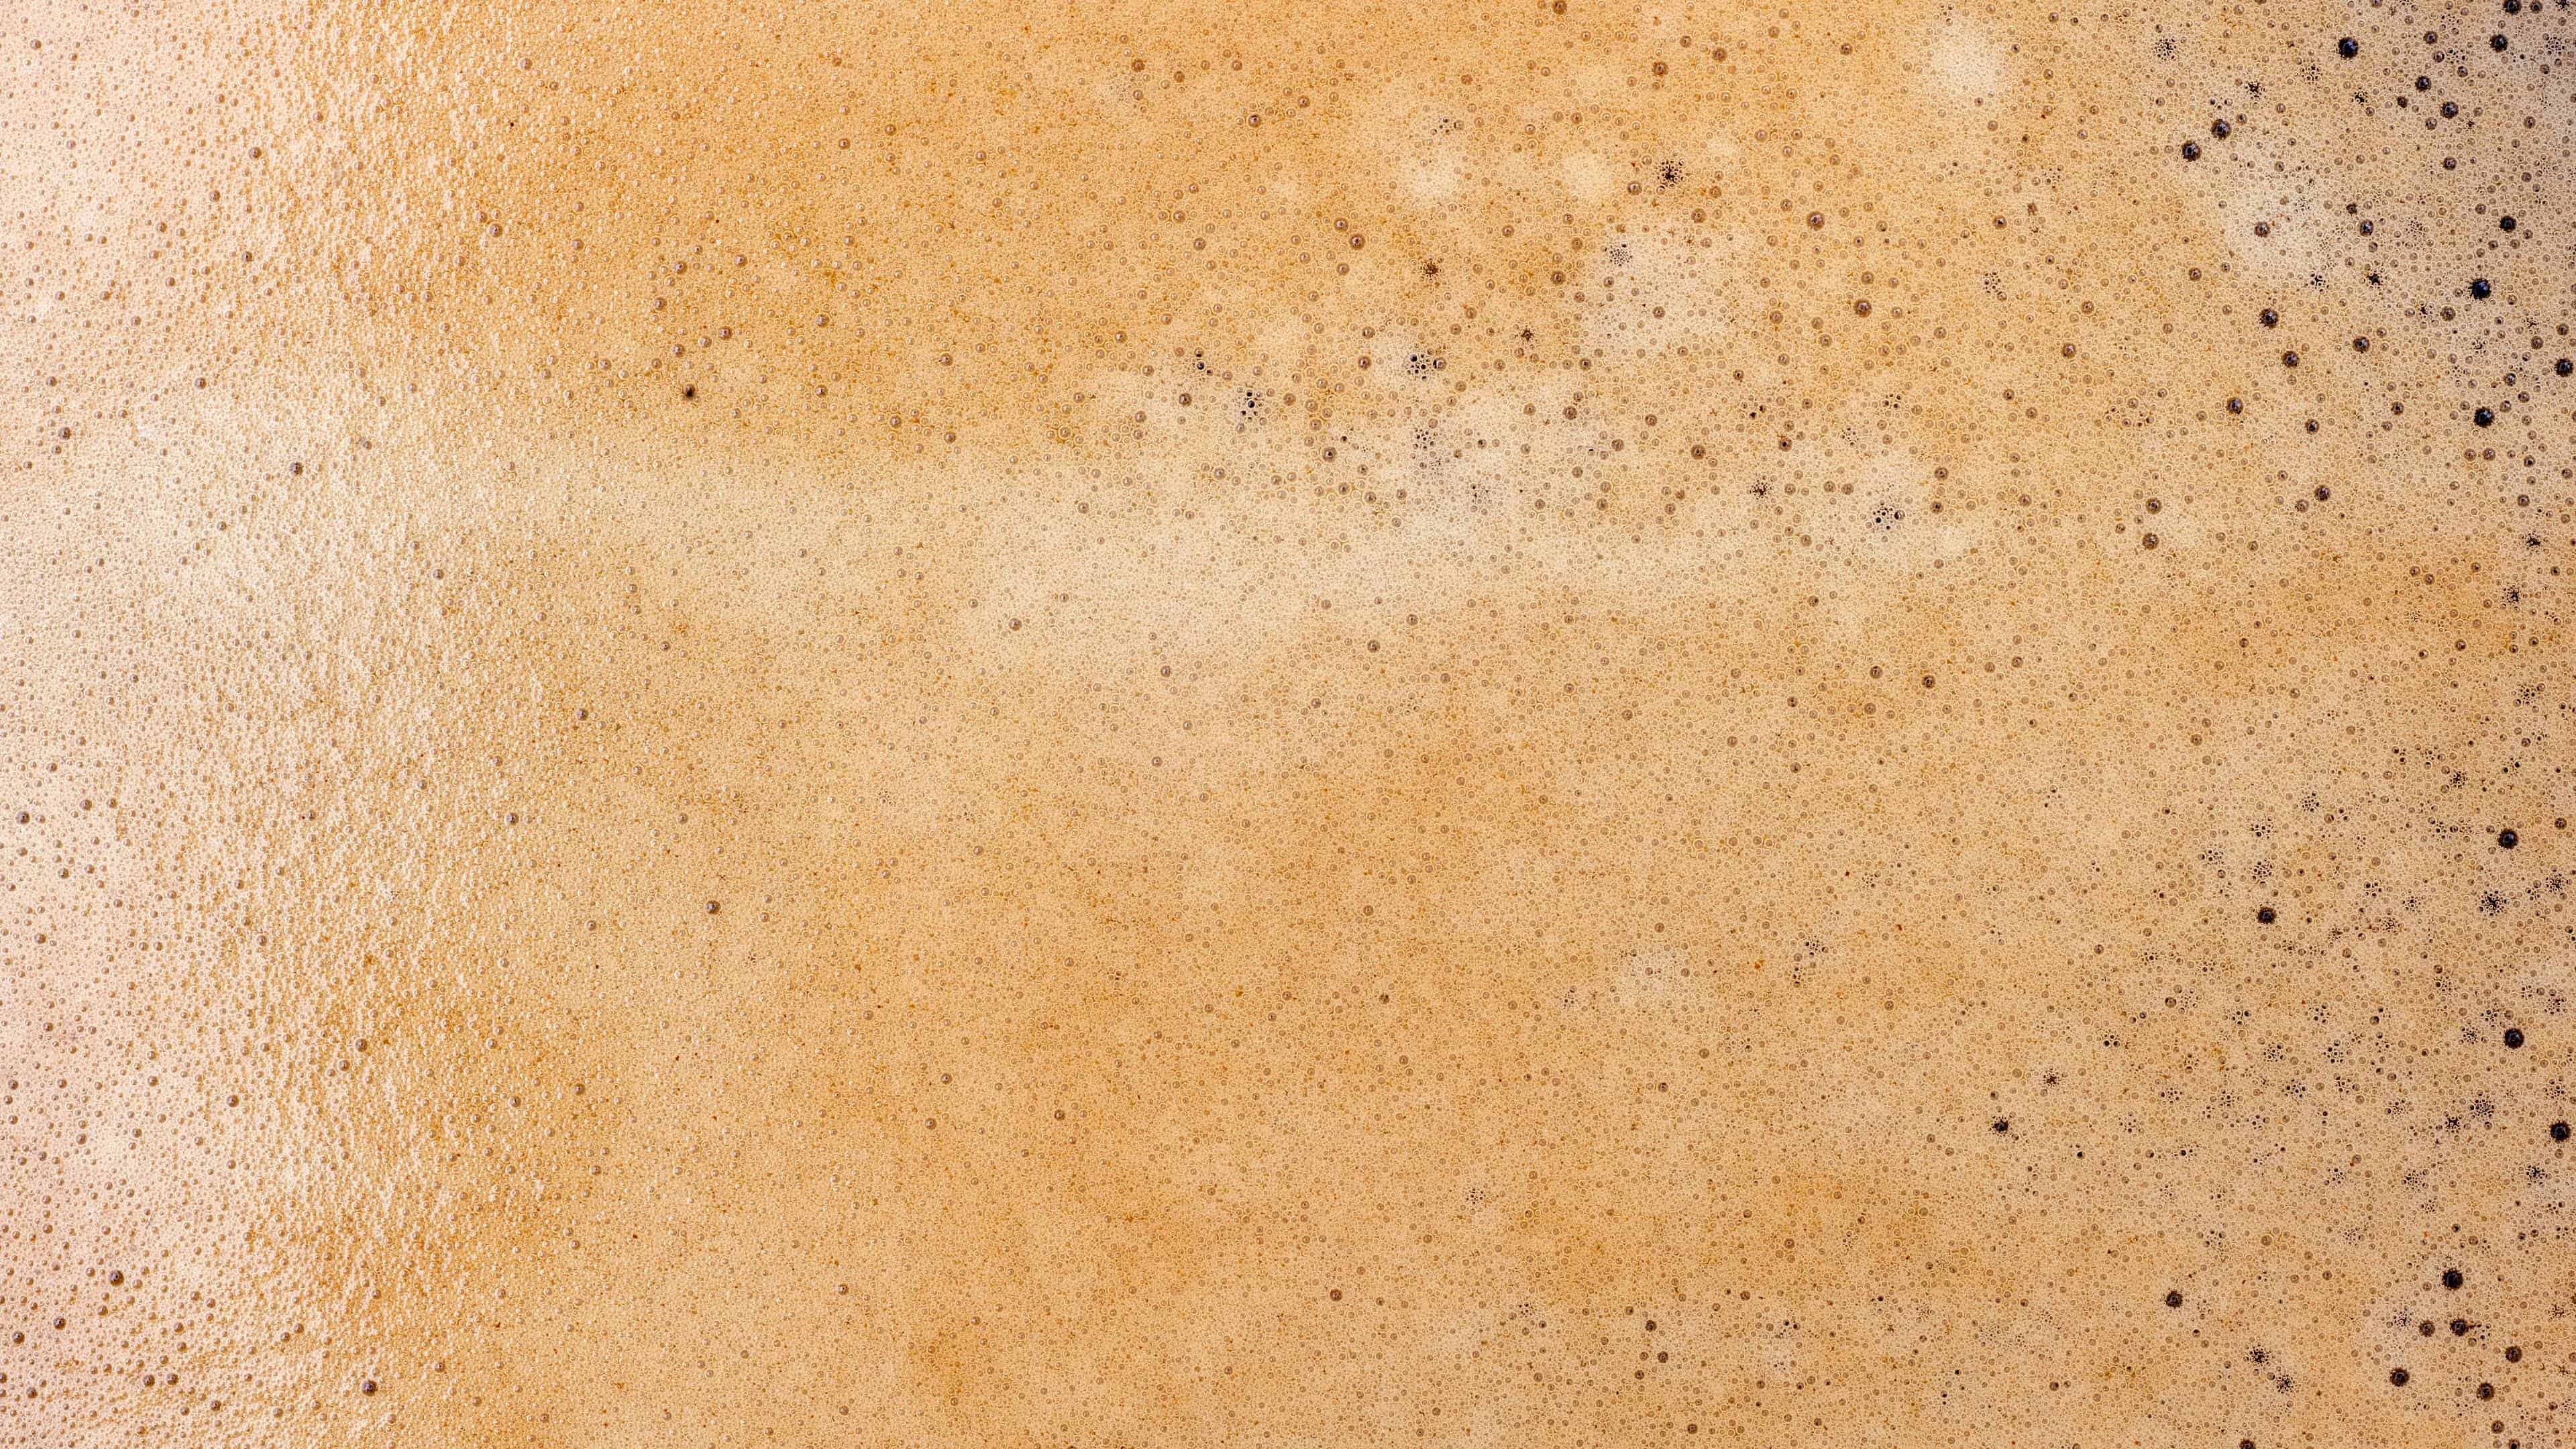 coffee foam uhd 4k wallpaper